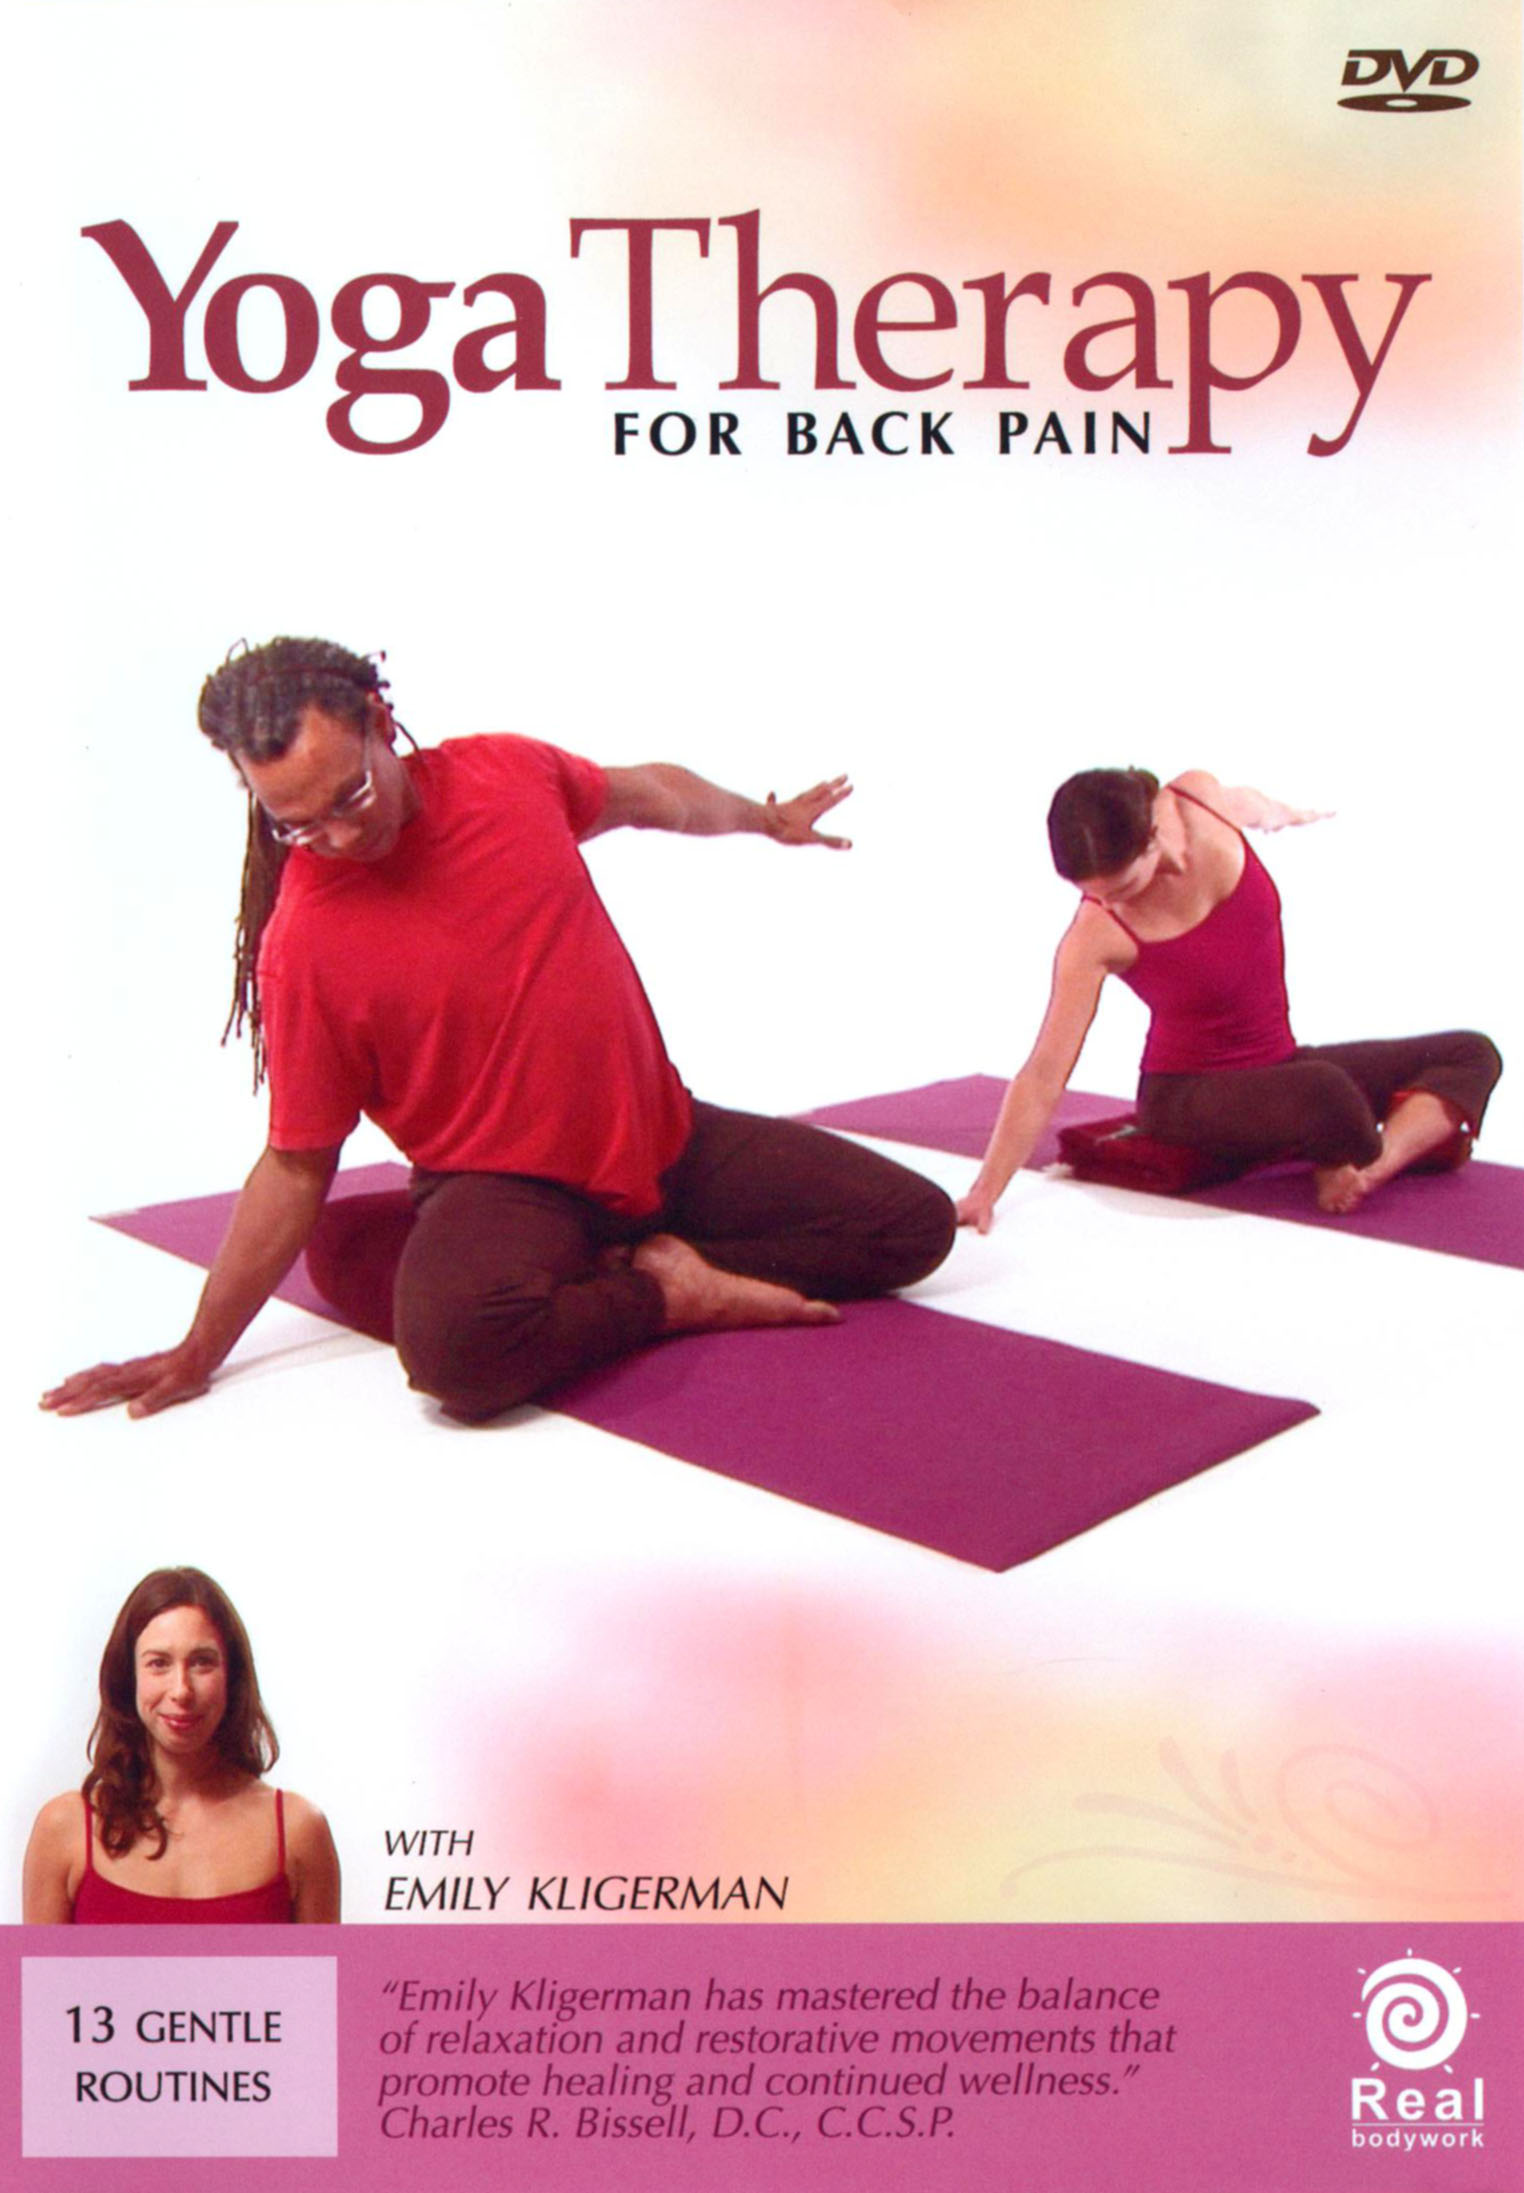 Yoga Therapy for Back Pain